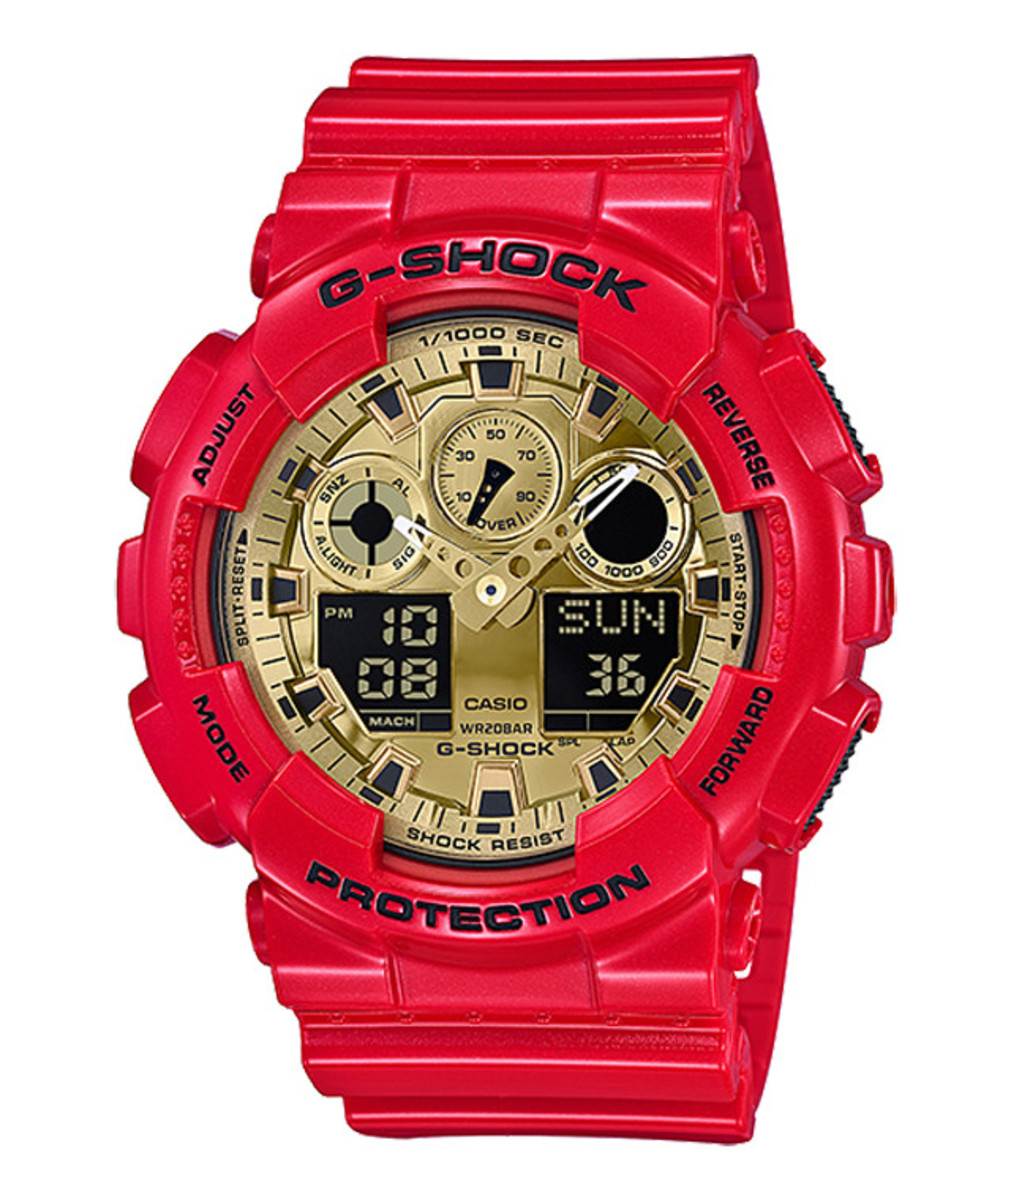 g-shock-red-and-gold-watches-02